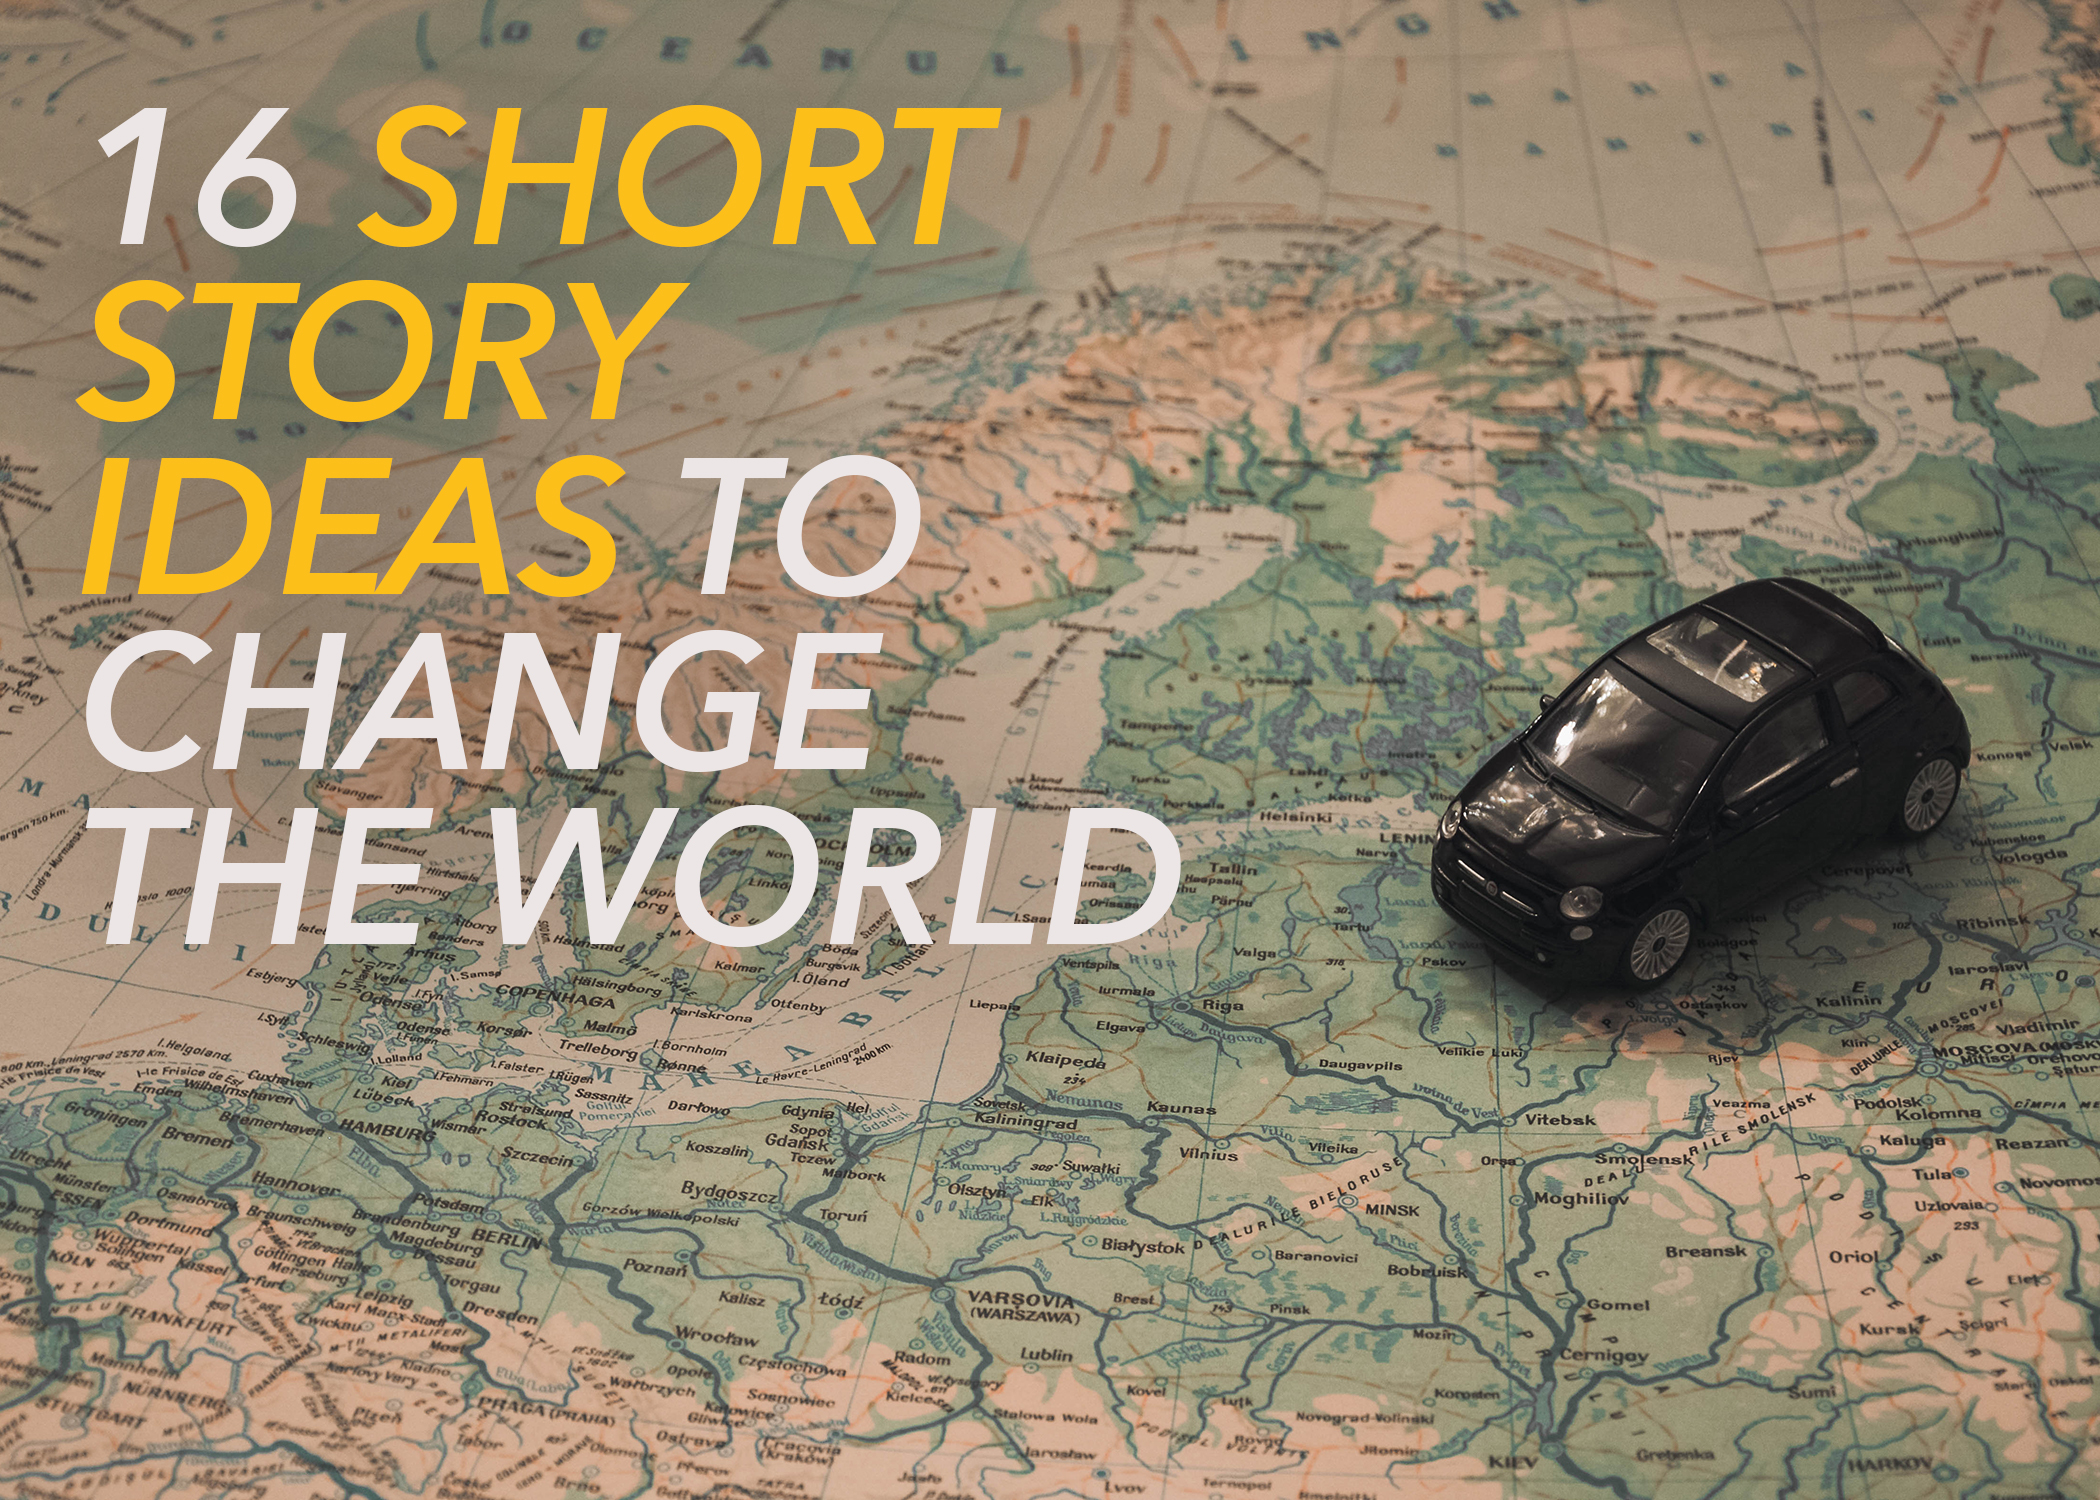 16 Short Story Ideas to Change the World